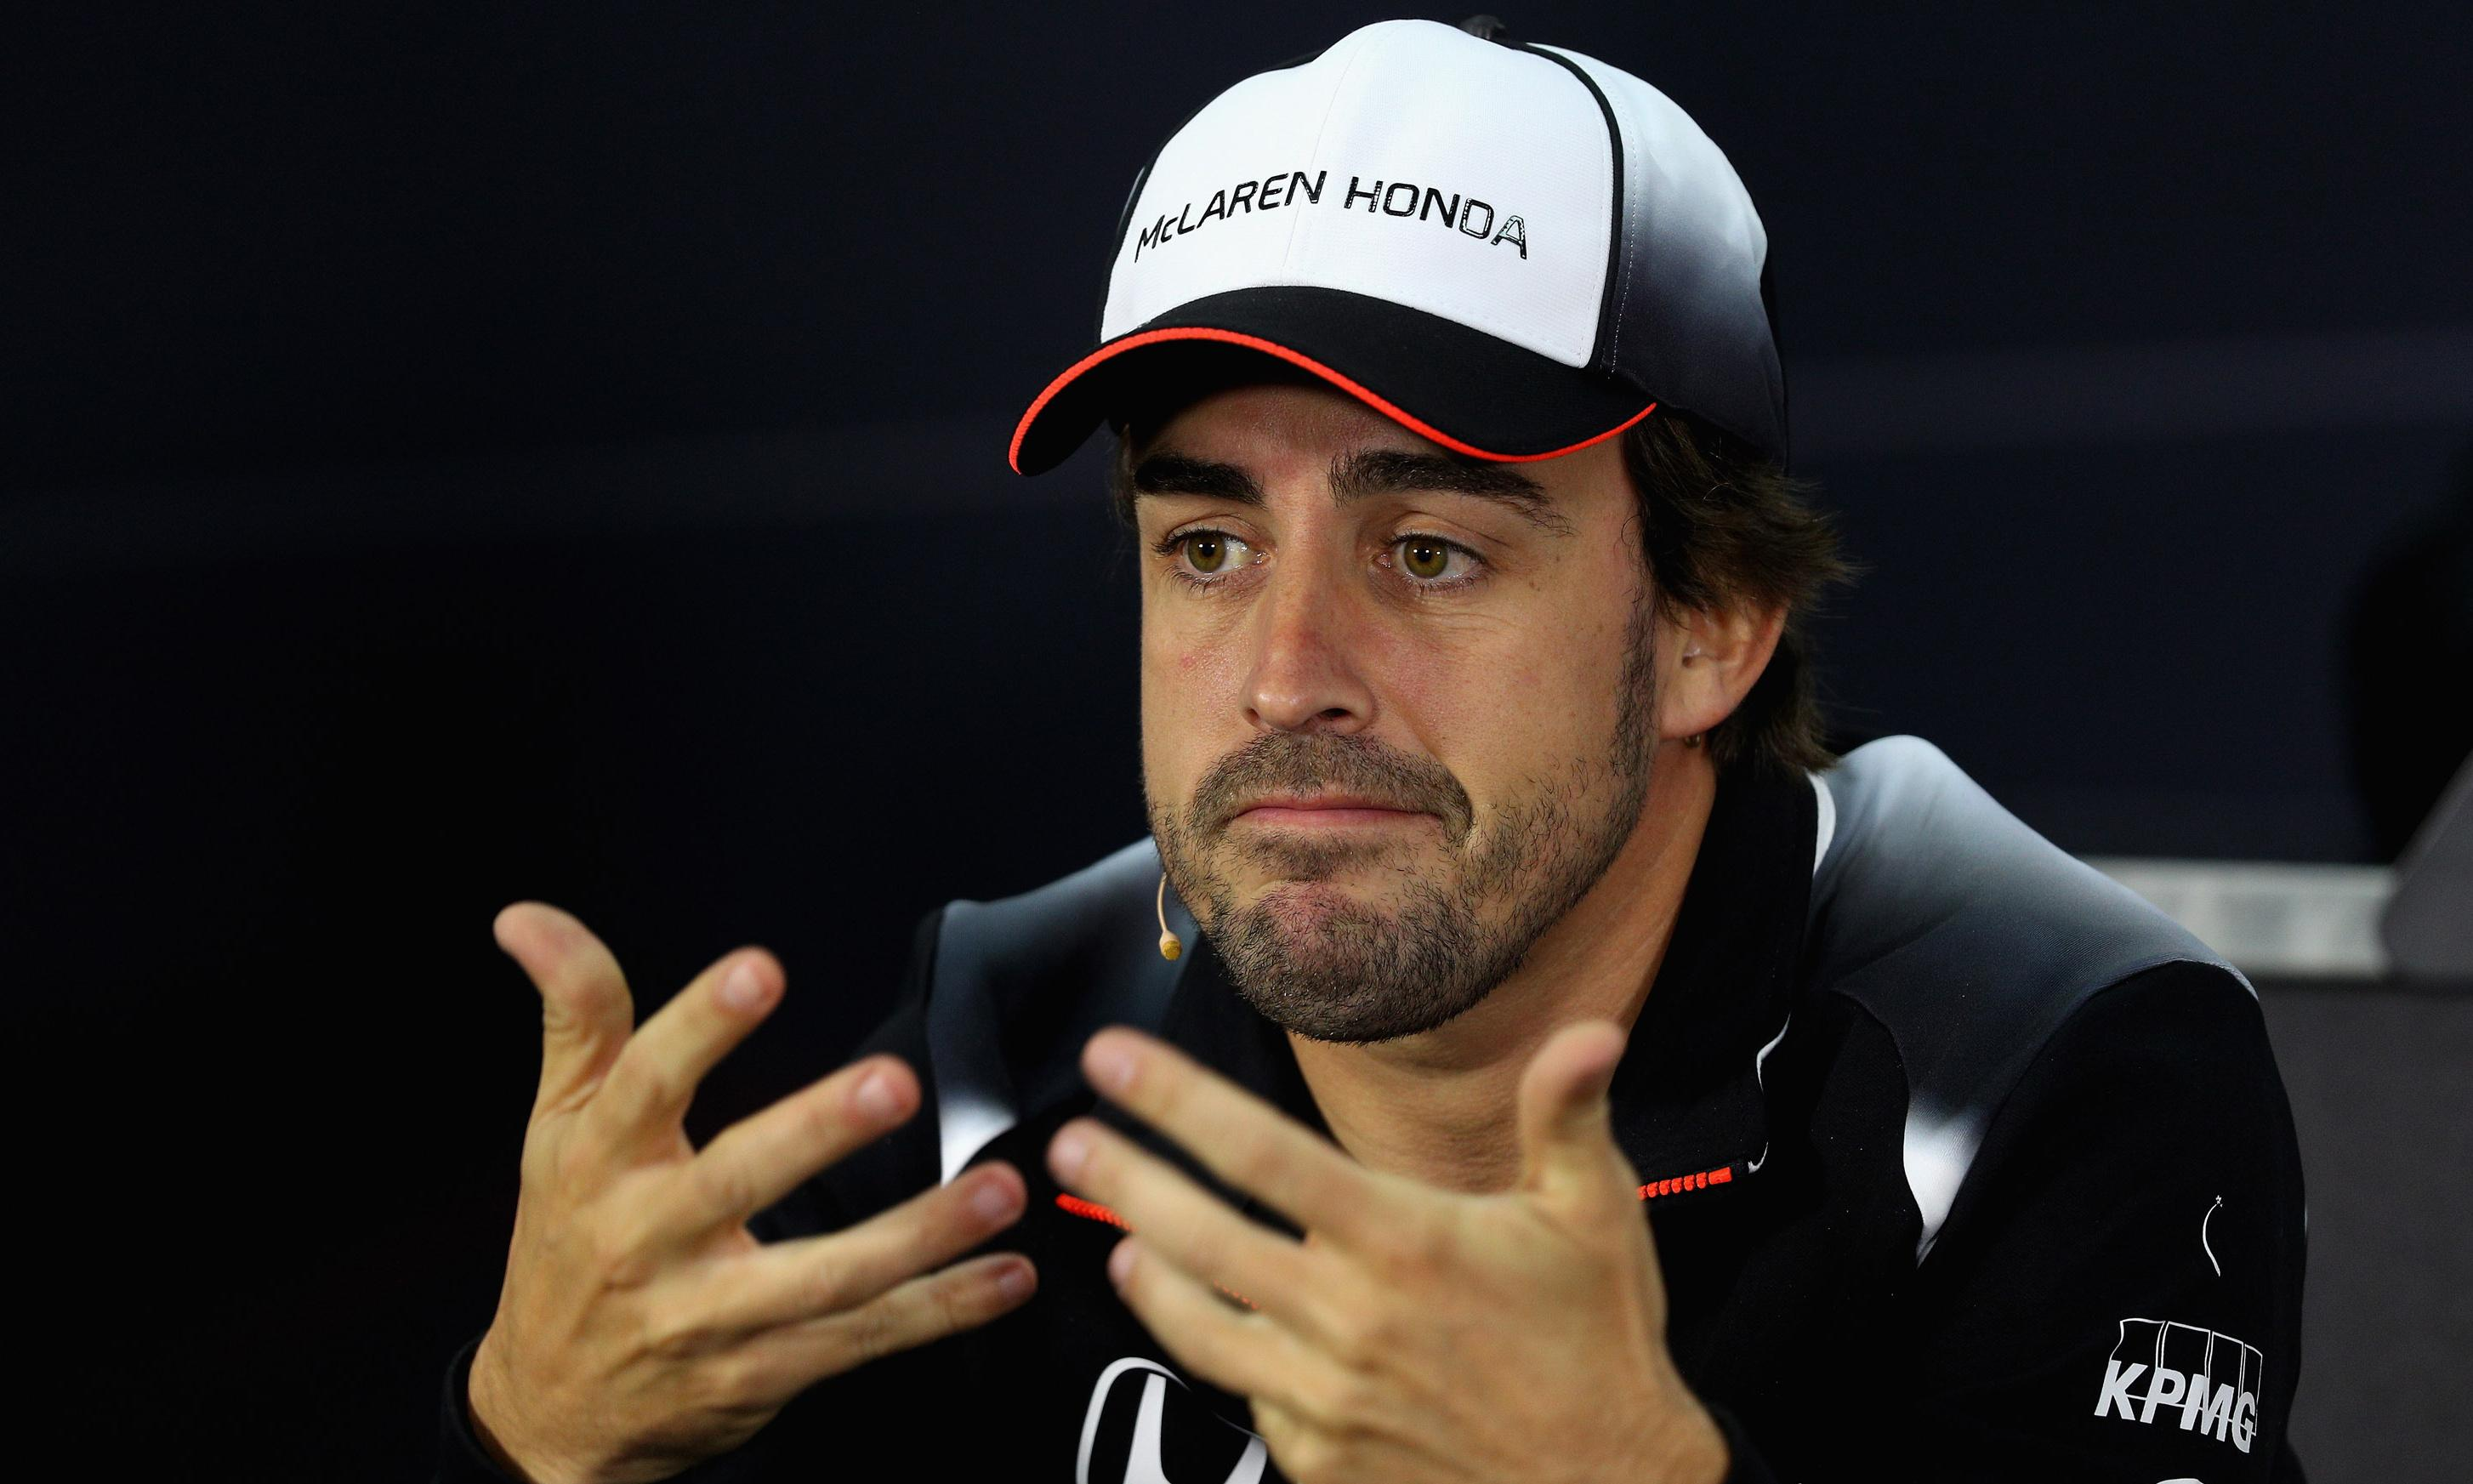 Alonso to drive for McLaren in Indy 500 but F1 return unlikely